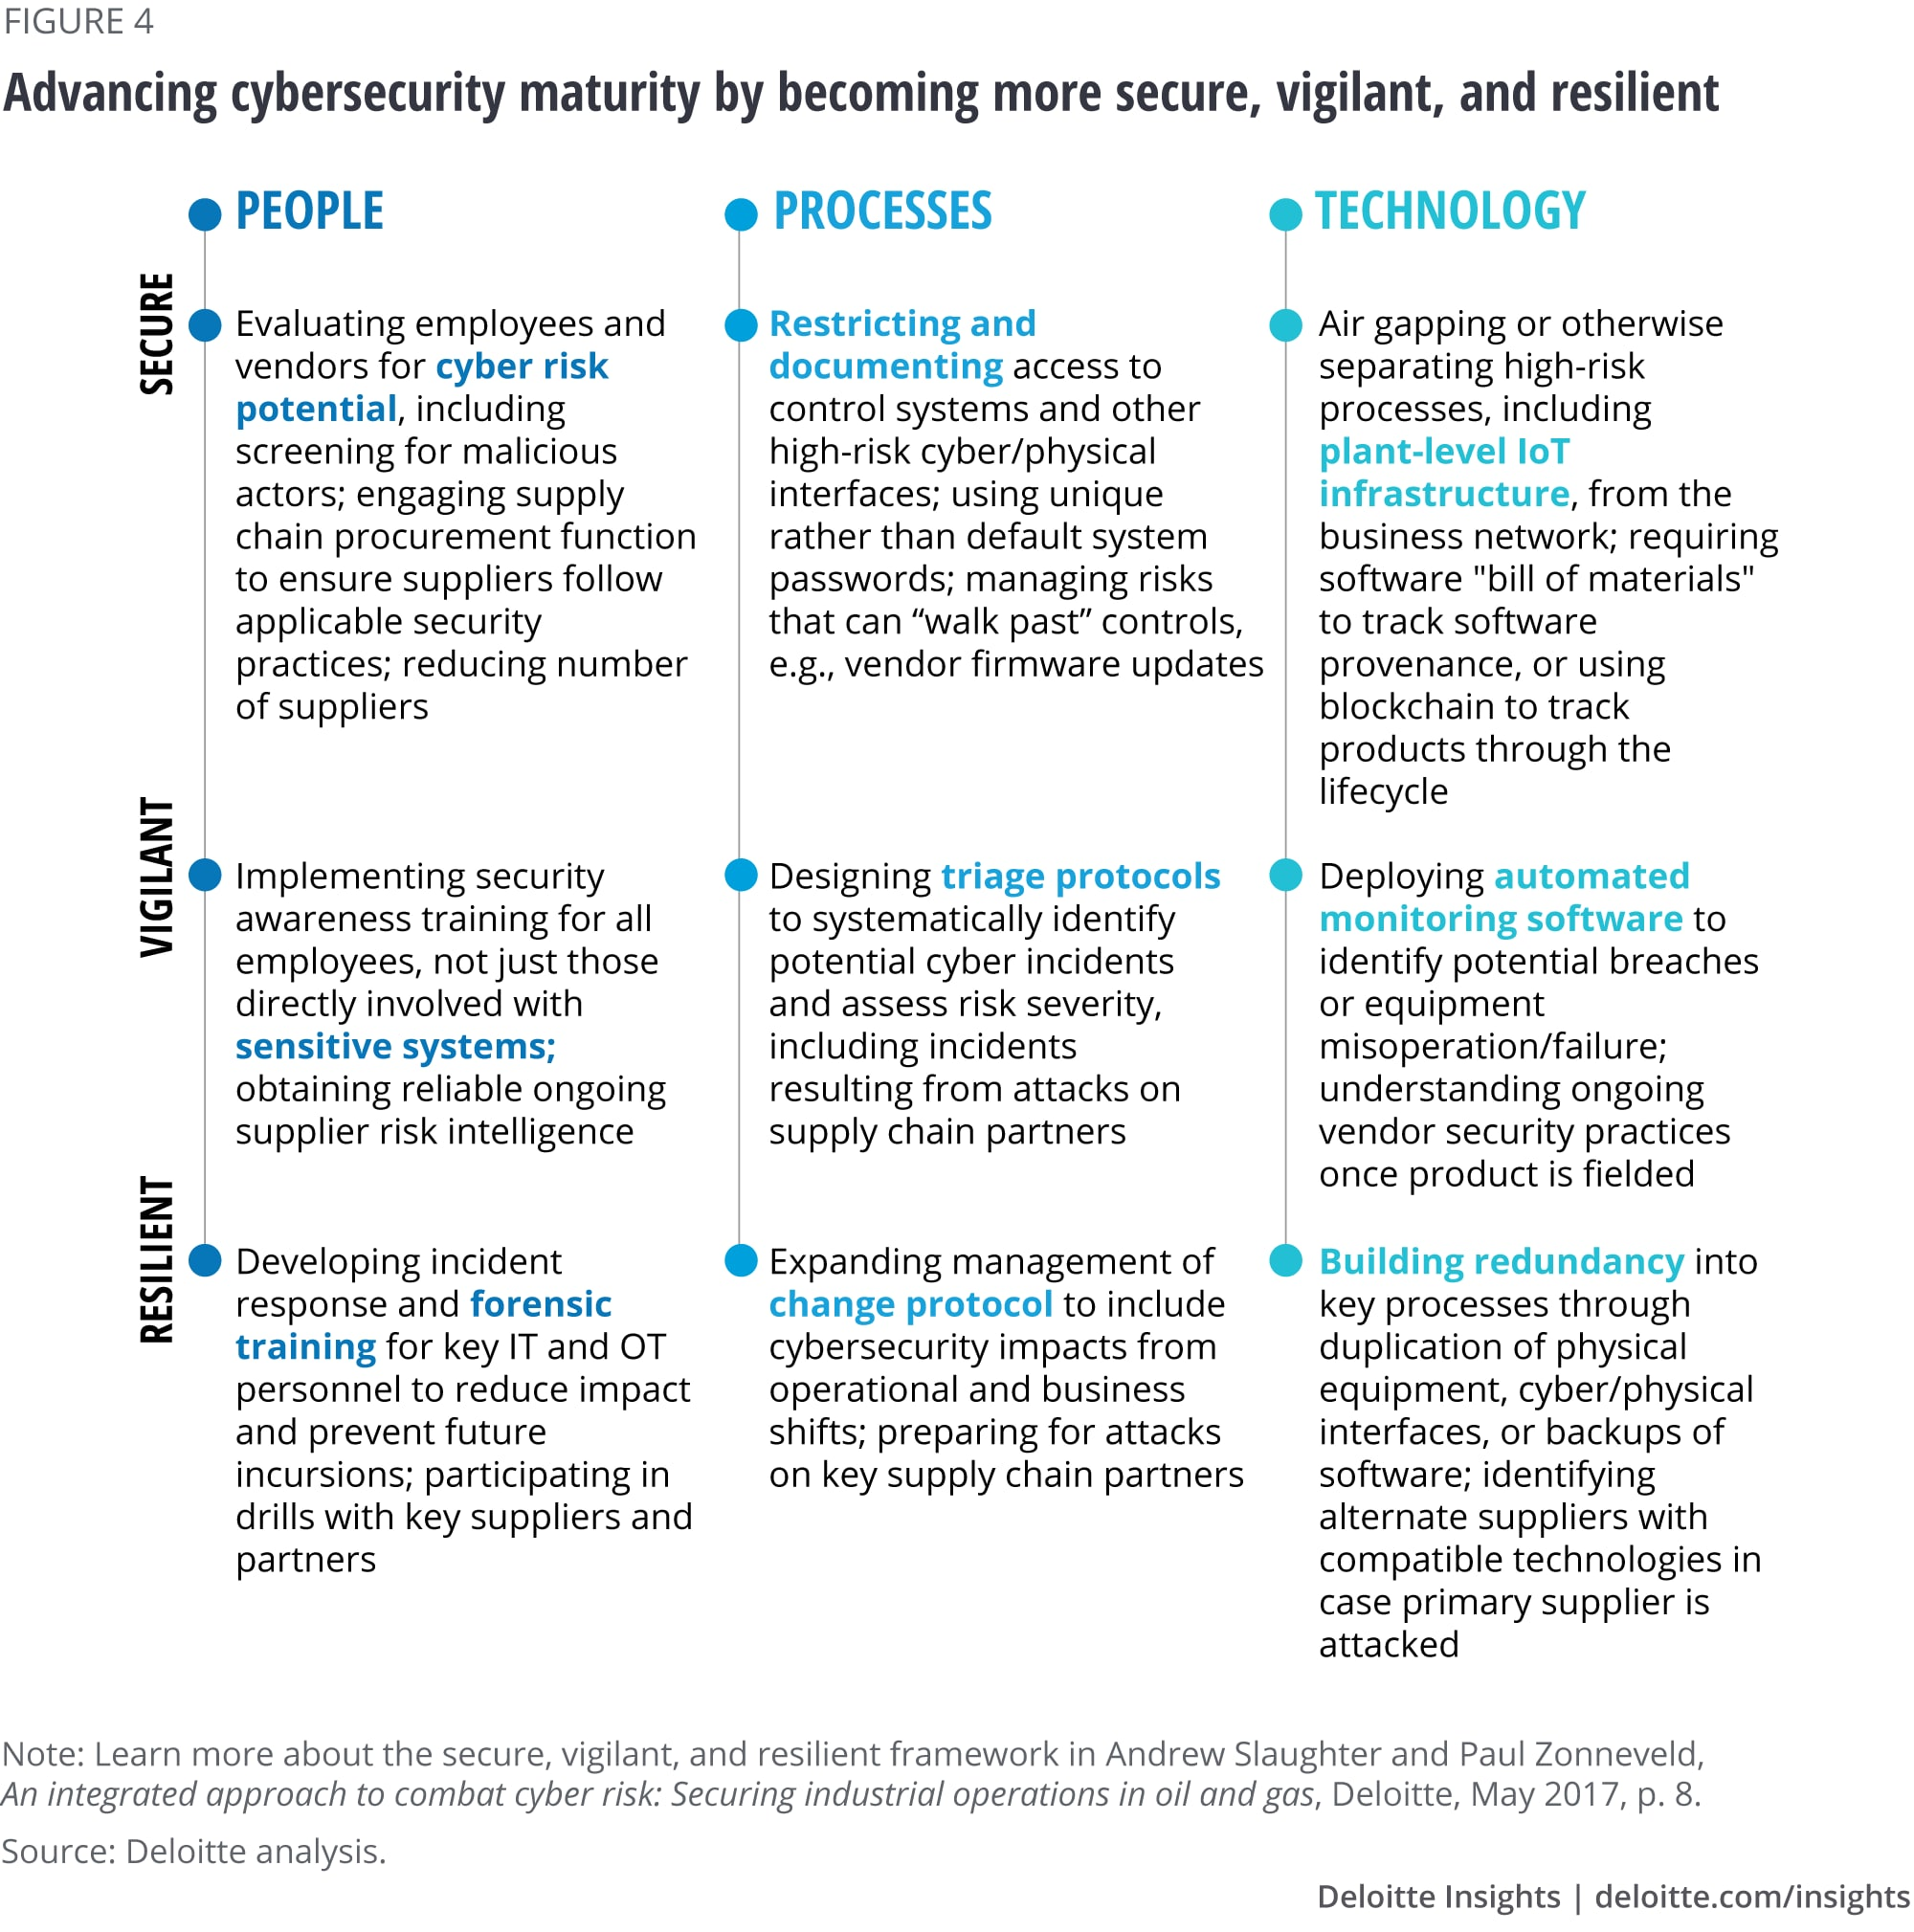 Advancing cybersecurity maturity by becoming more secure, vigilant, and resilient